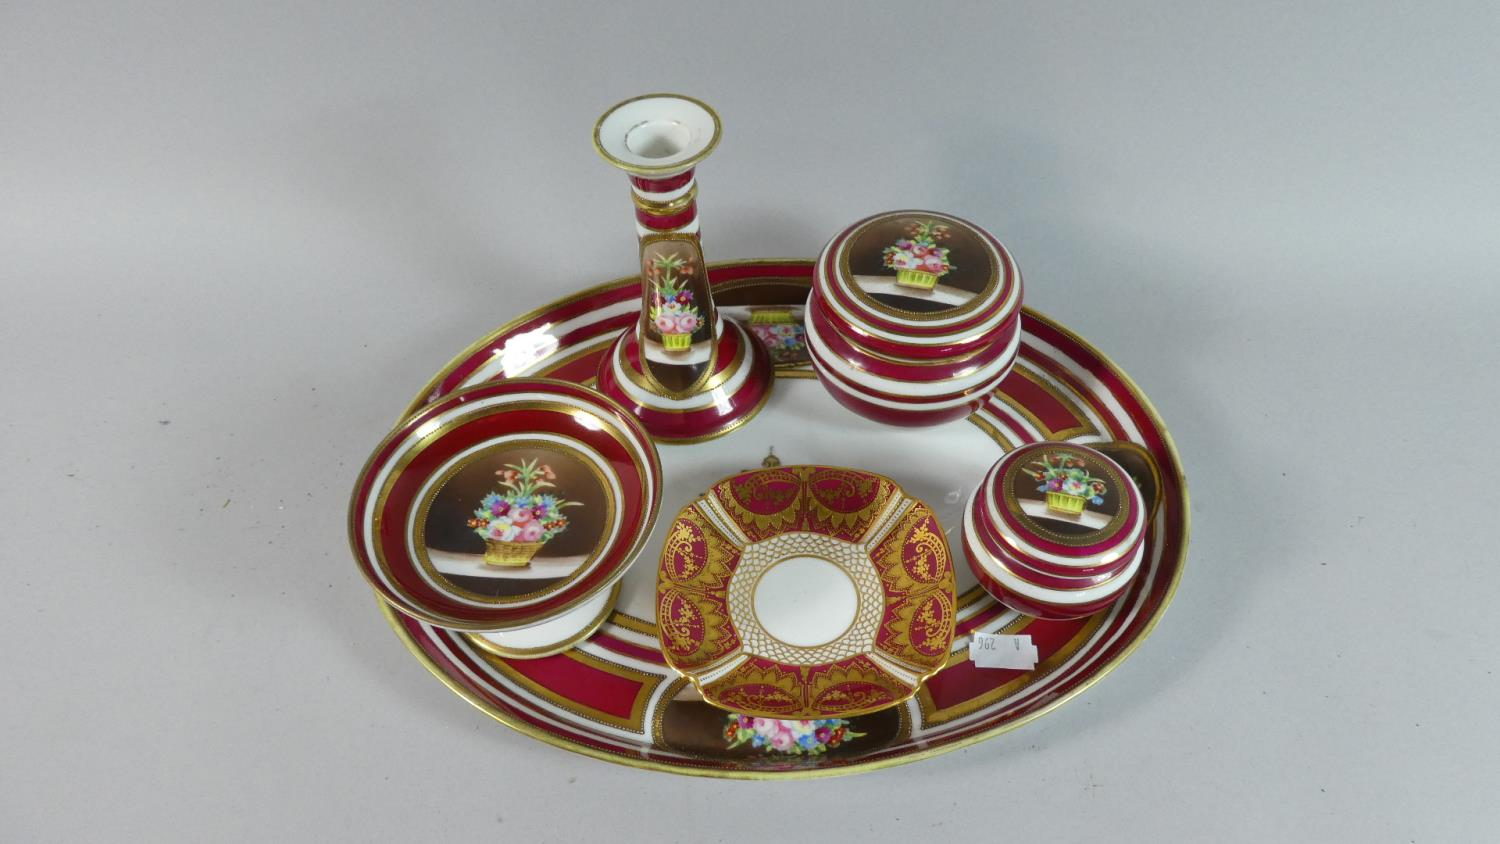 Lot 247 - A Noritake Dressing Table Set and a Small Dish